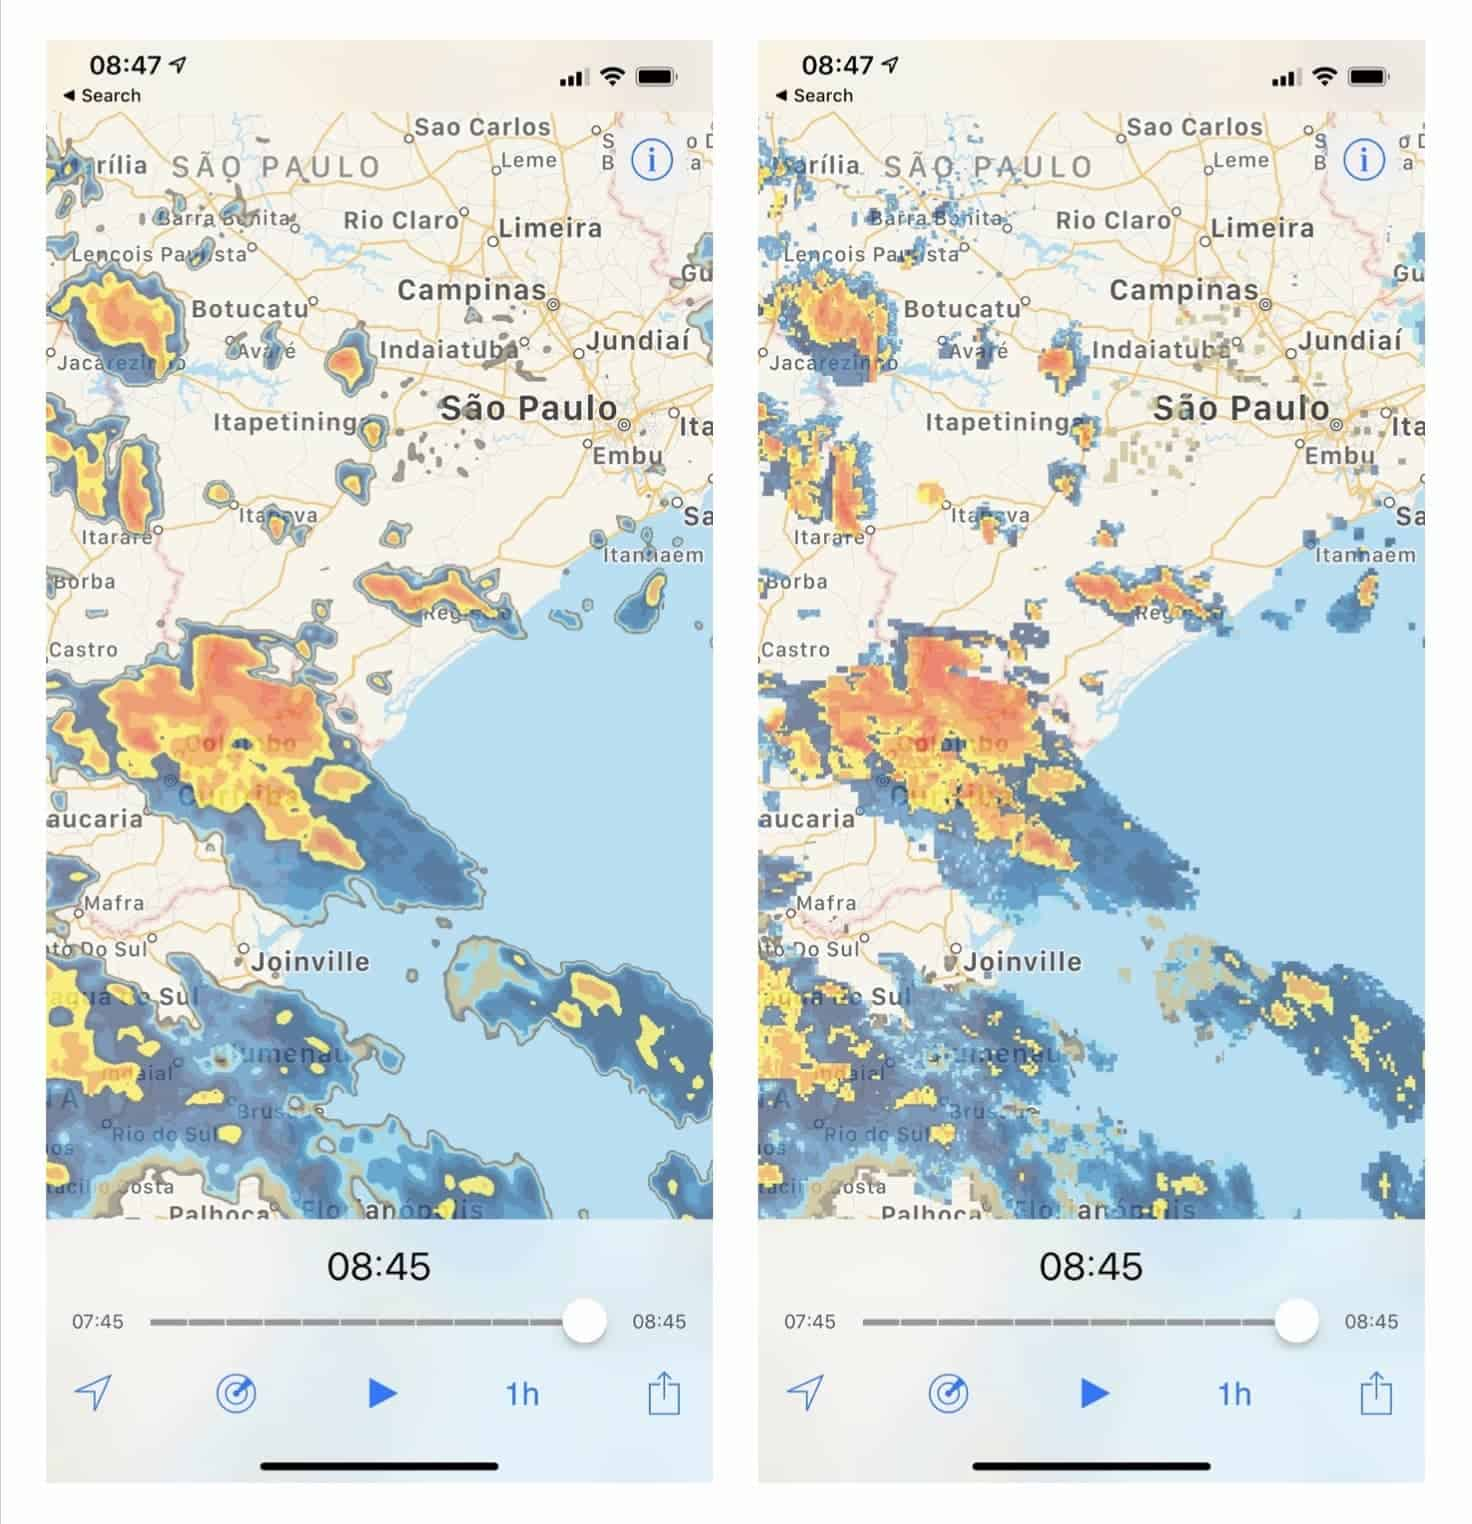 For a more accurate depiction of radar data, turn smoothing off. Left image is smoothed, right image is not.